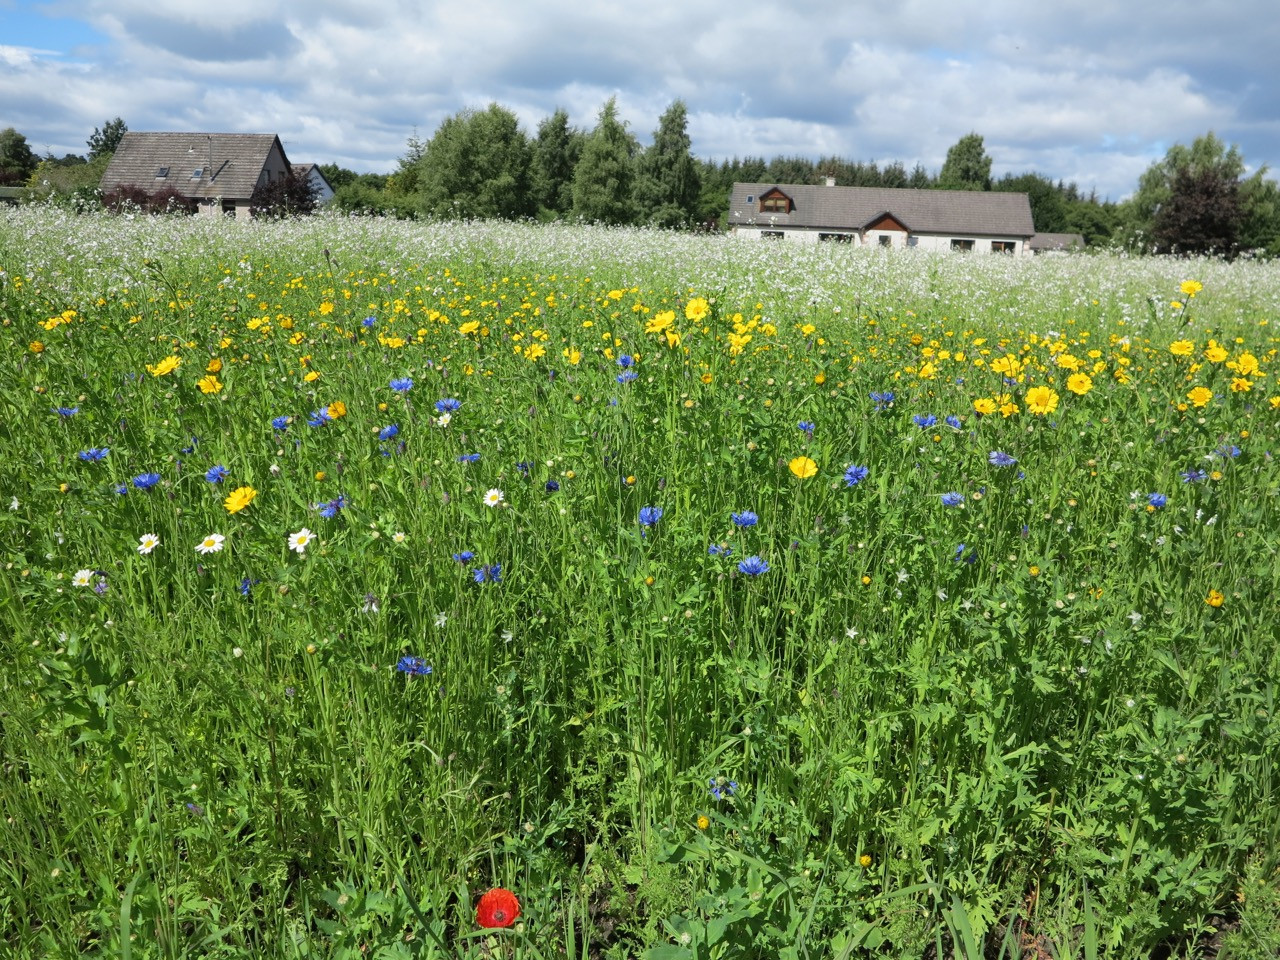 SFW field at Mousa today. Annuals and bird crop